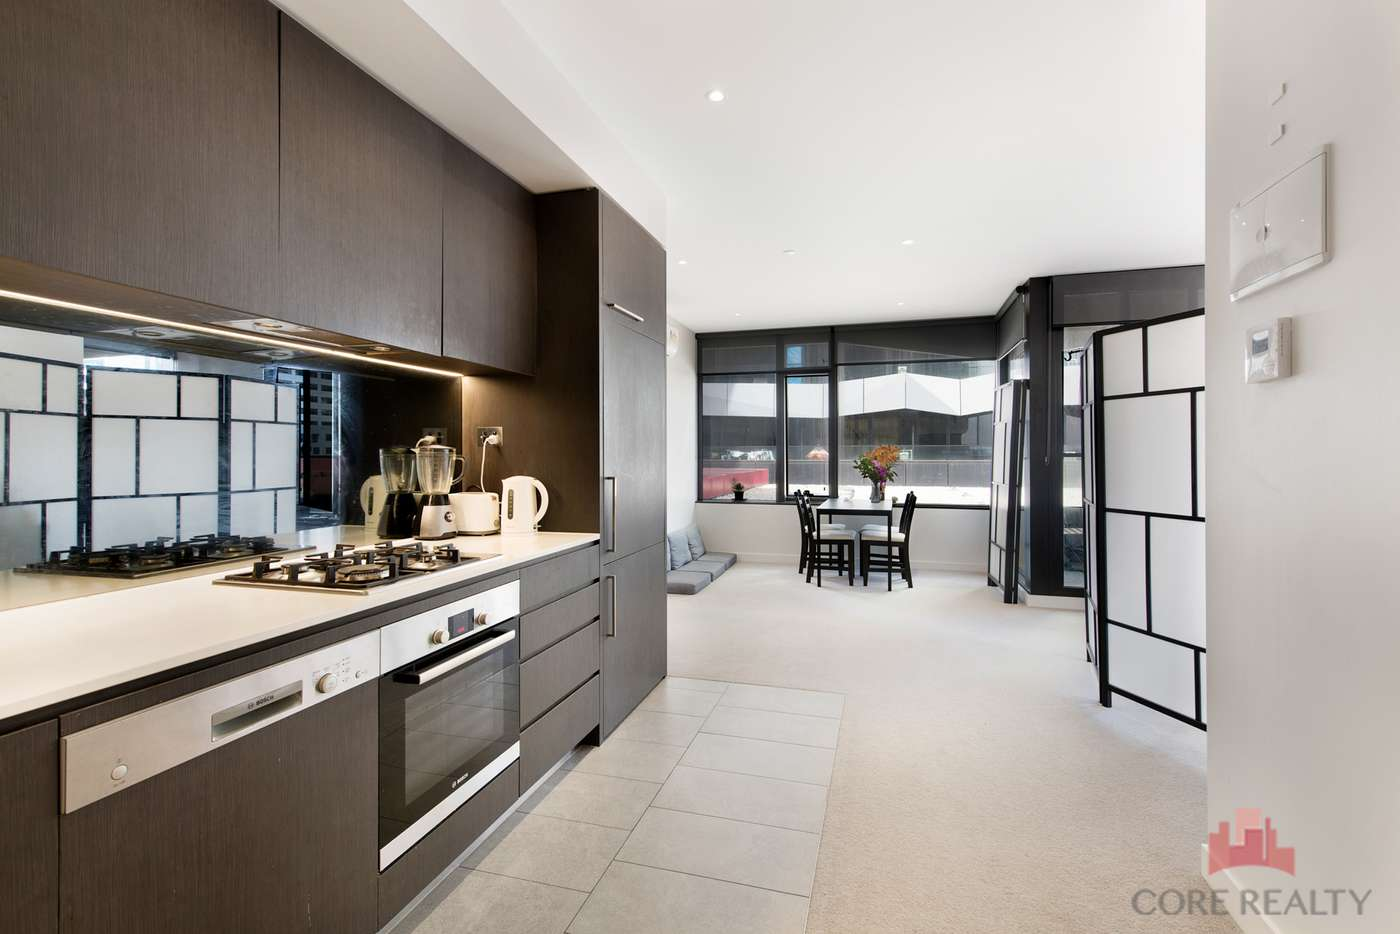 Main view of Homely apartment listing, 1113/155 Franklin Street, Melbourne VIC 3000